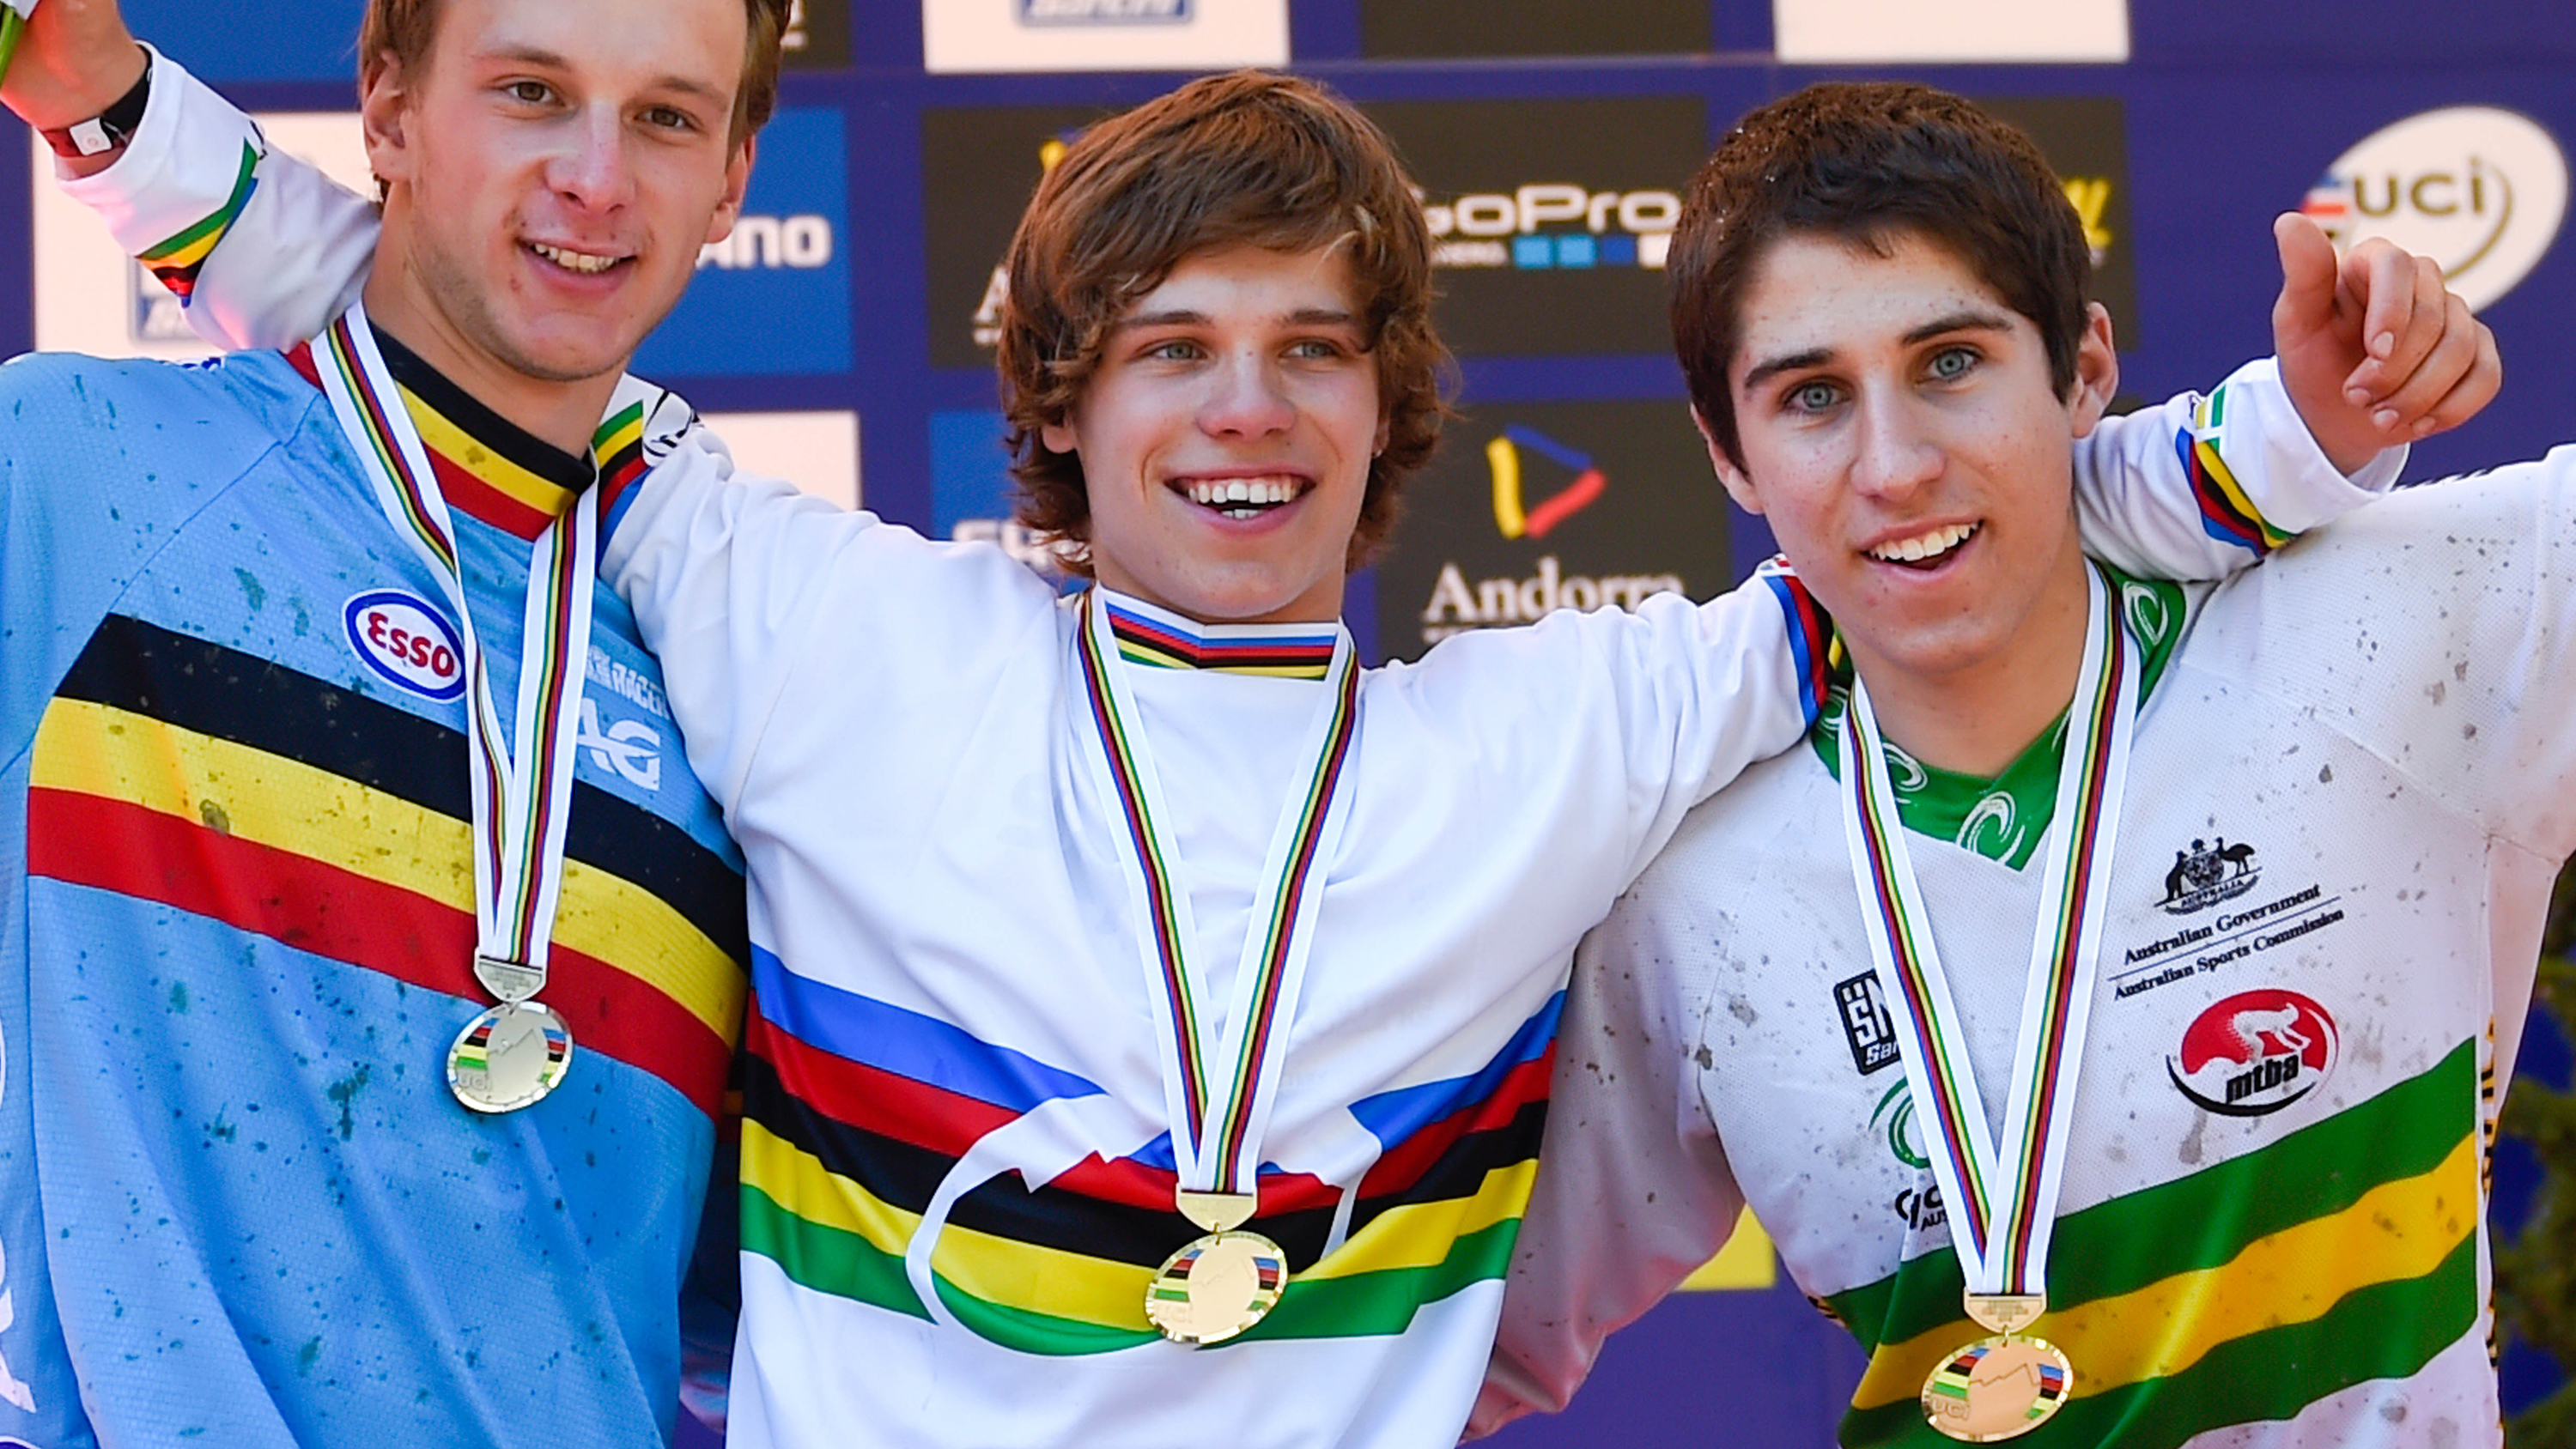 Greenland went one better than the silver he took in Norway as he won by over three seconds to get his hands on a rainbow jersey.